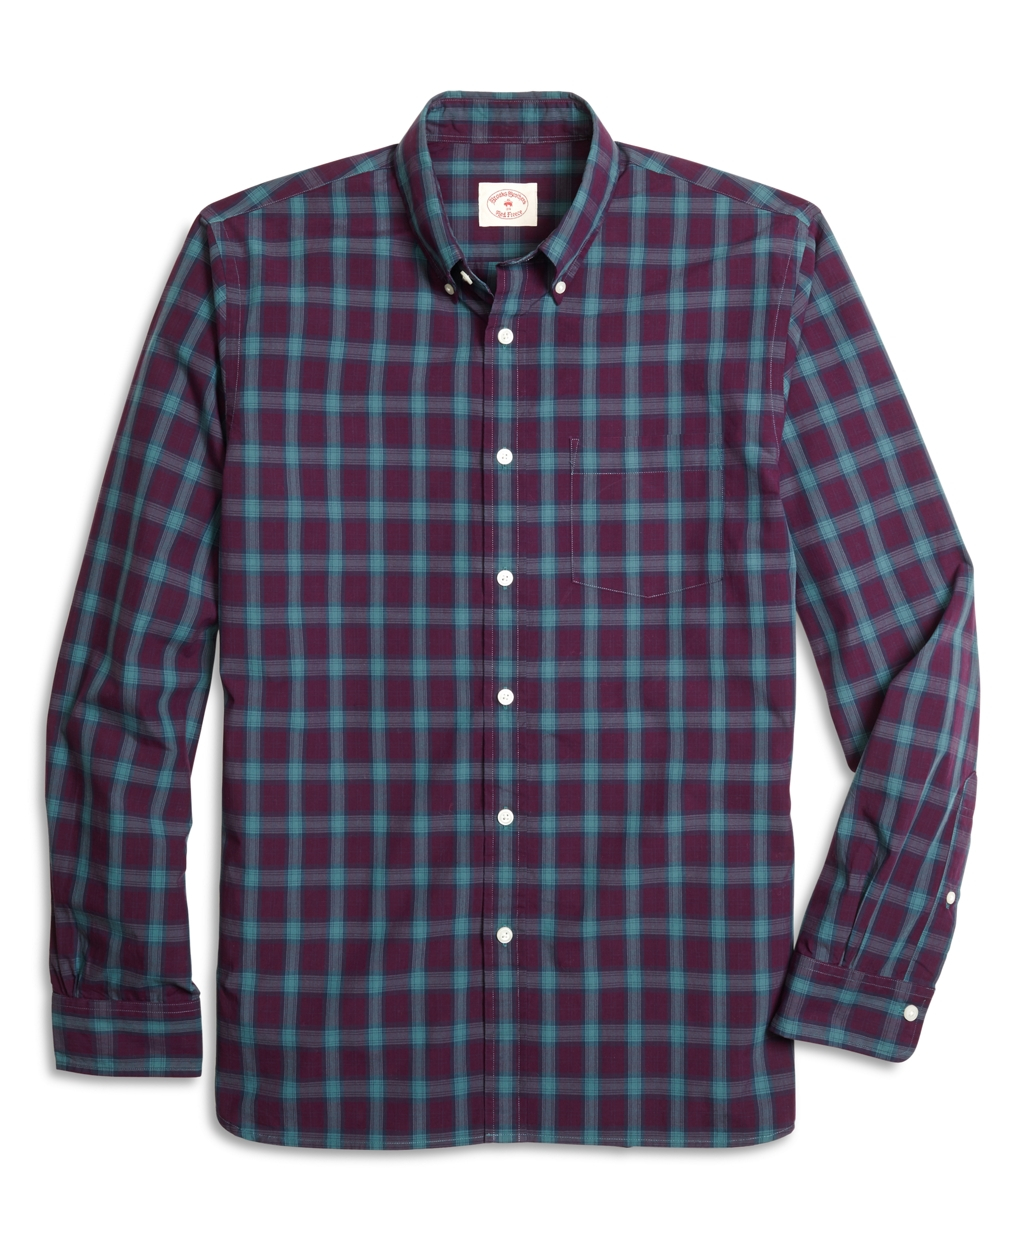 Lyst Brooks Brothers Burgundy And Green Plaid Sport